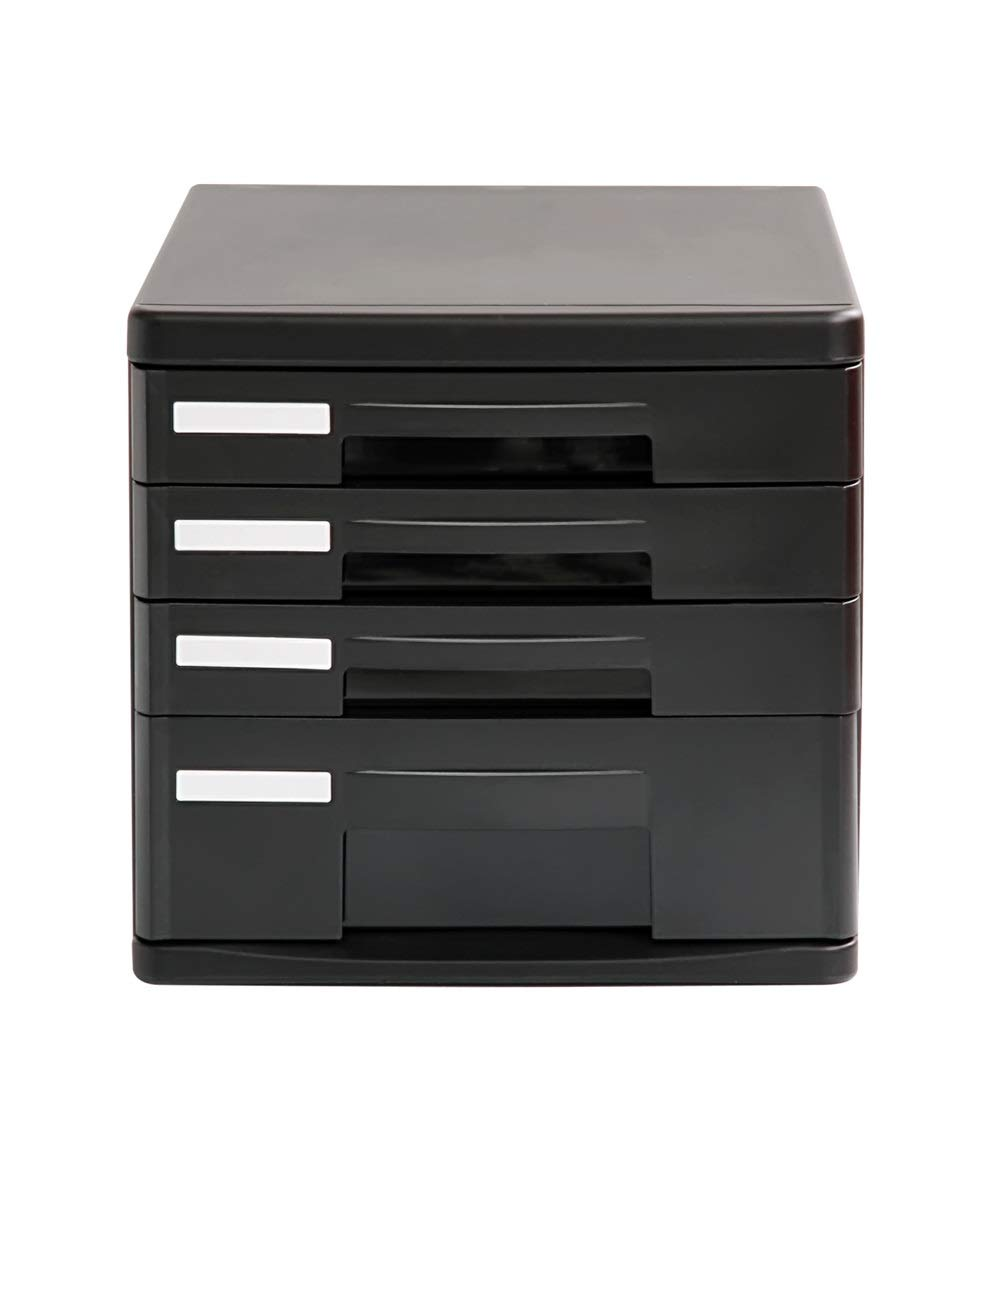 File Cabinet Office Desktop A4 Plastic Data Cabinet Drawer Desktop Cabinet File Storage Cabinet Storage Box (Design: 4 Drawers) Filing cabinets